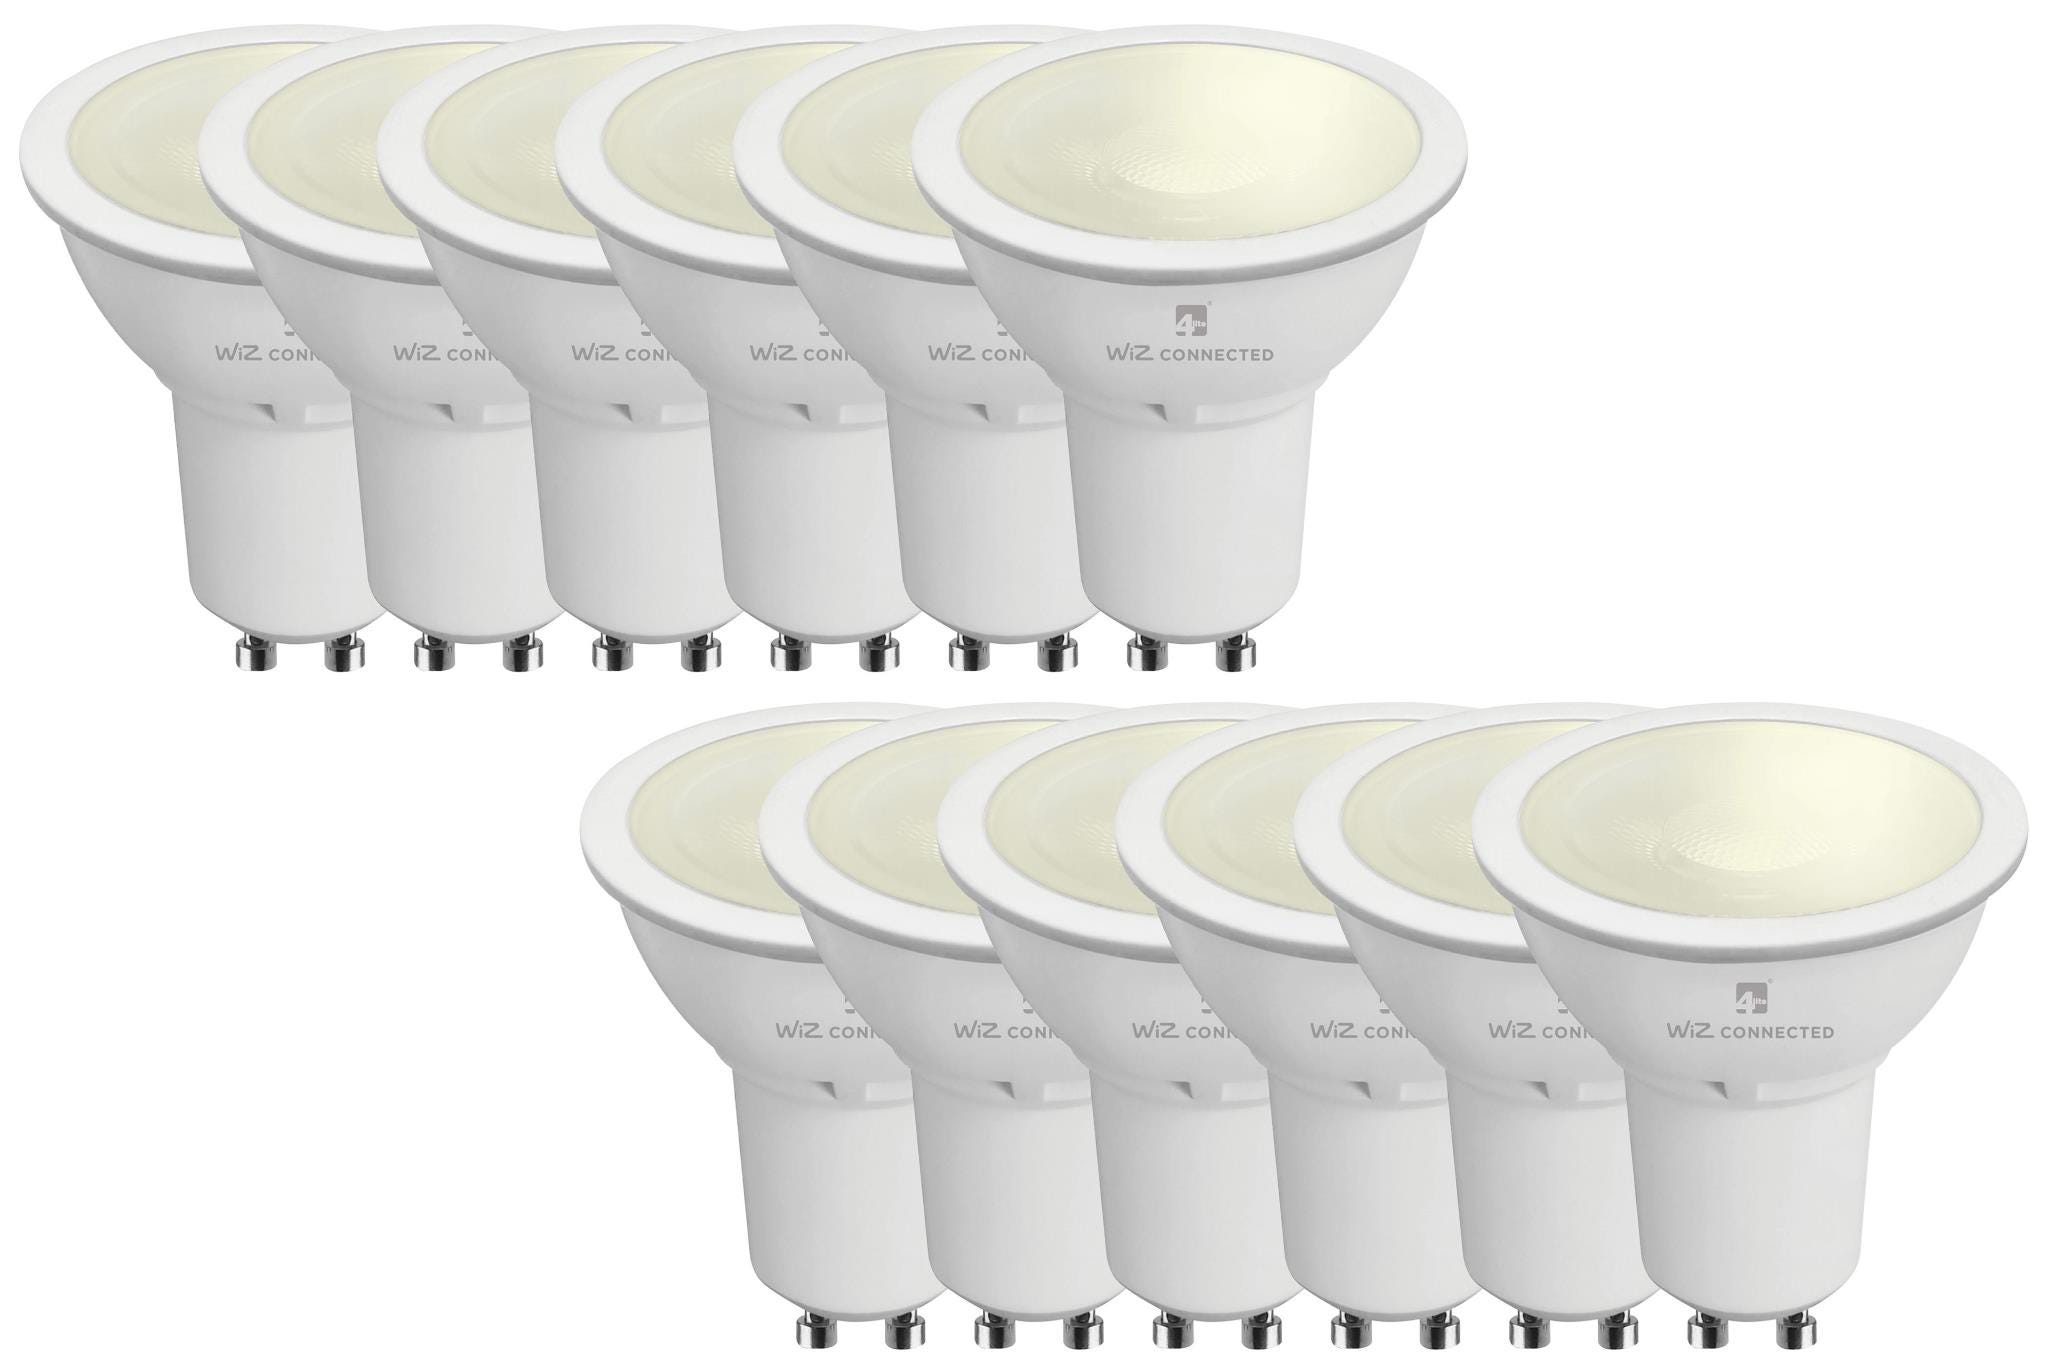 4lite Smart GU10 LED Bulb 350 Lumens Dimmable Wiz Connect Warm White 12 Pack